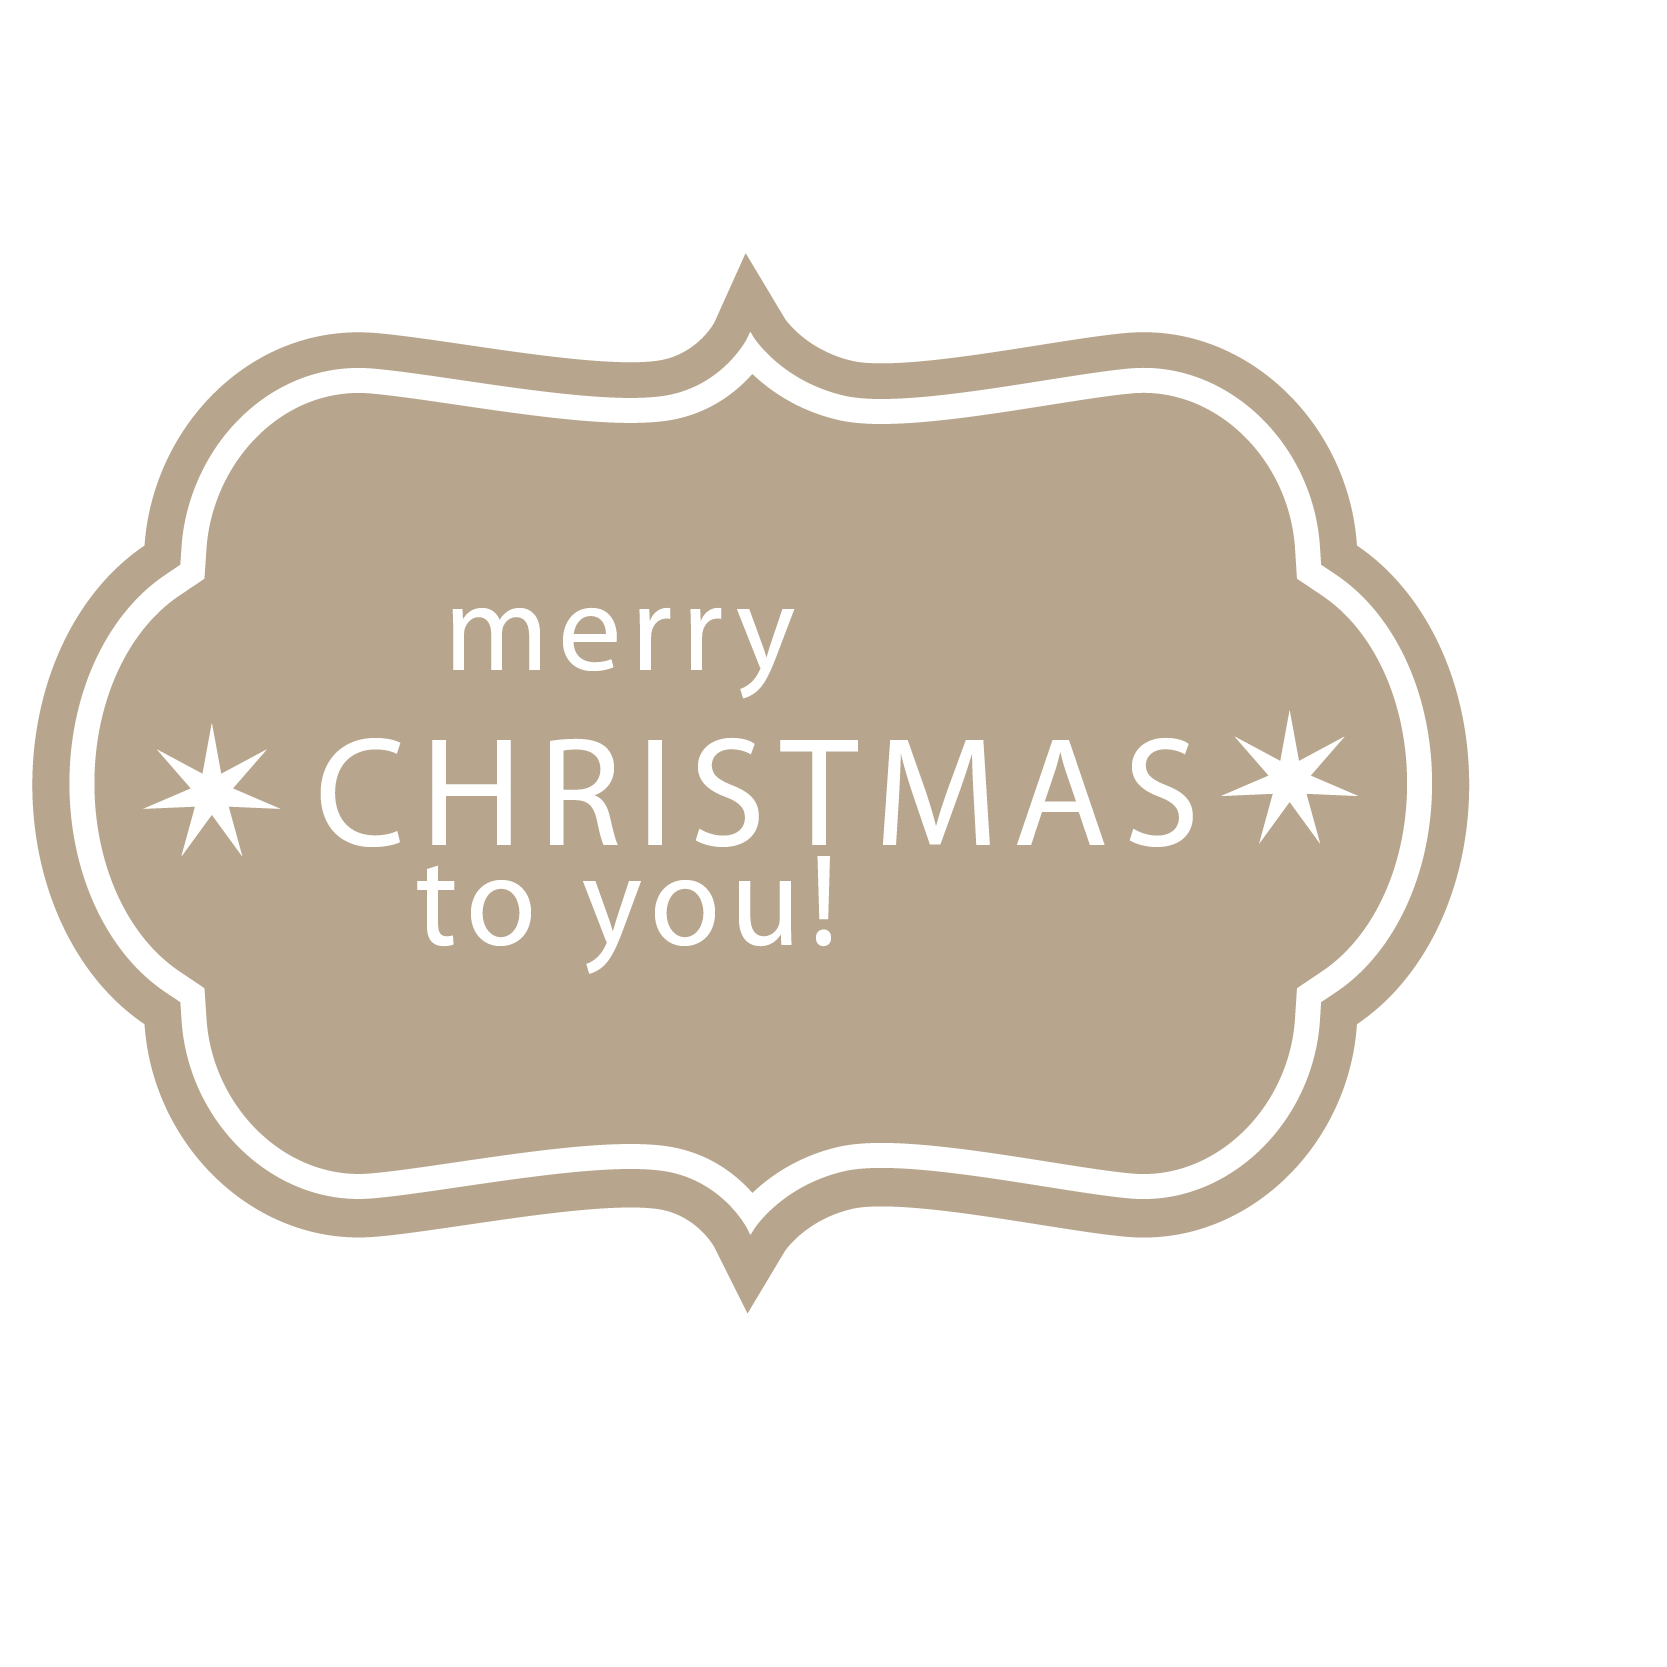 Labels vector text label. Euclidean icon small christmas